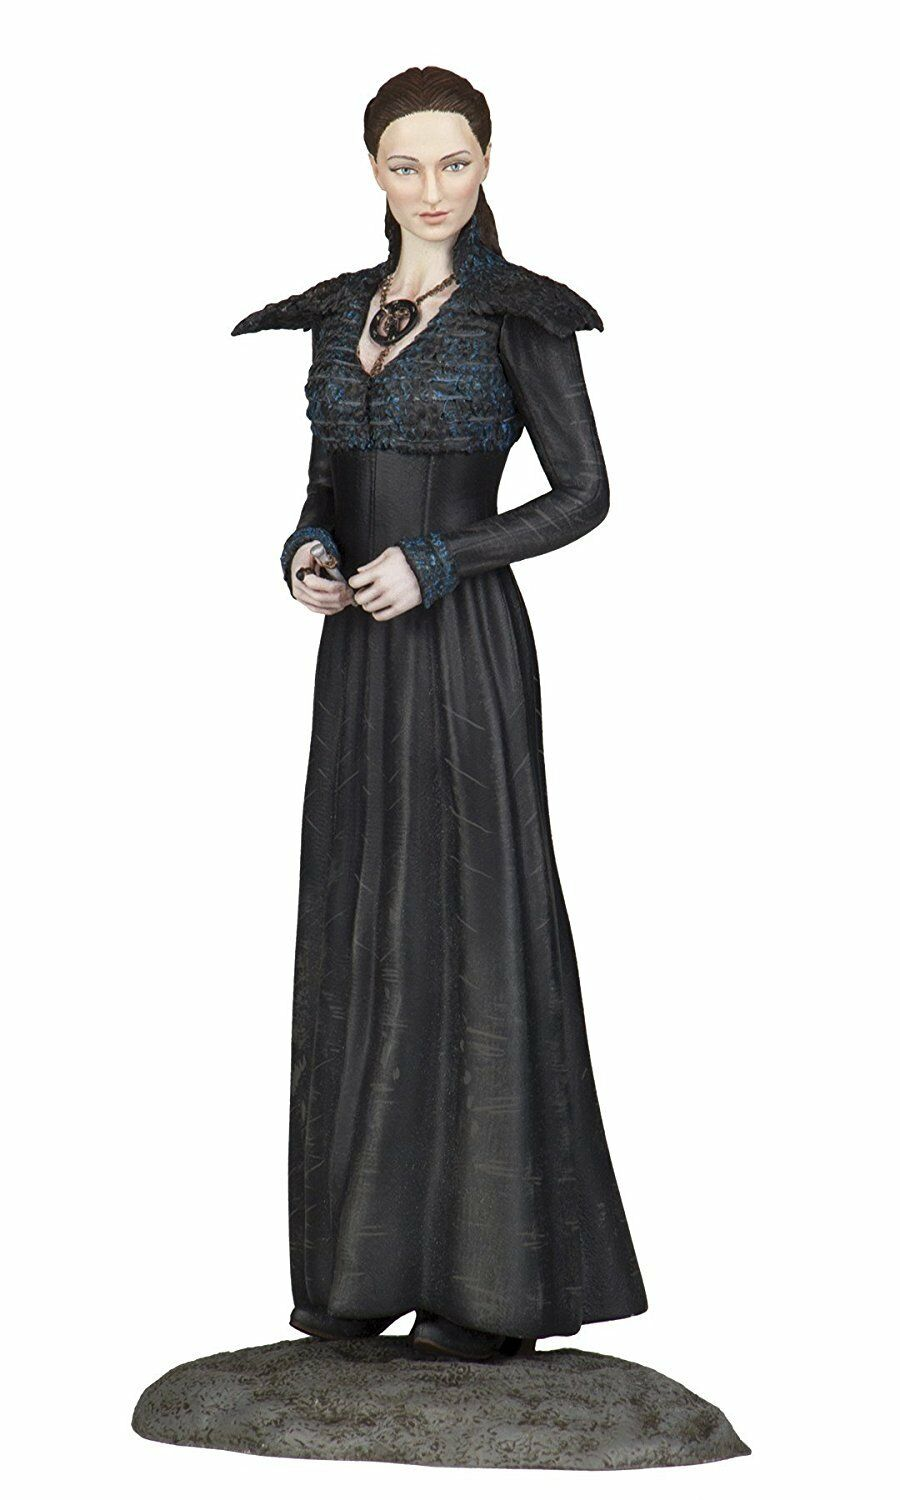 Game of Thrones Ygritte Action Statue Figure Dark House Deluxe GOT New Gift